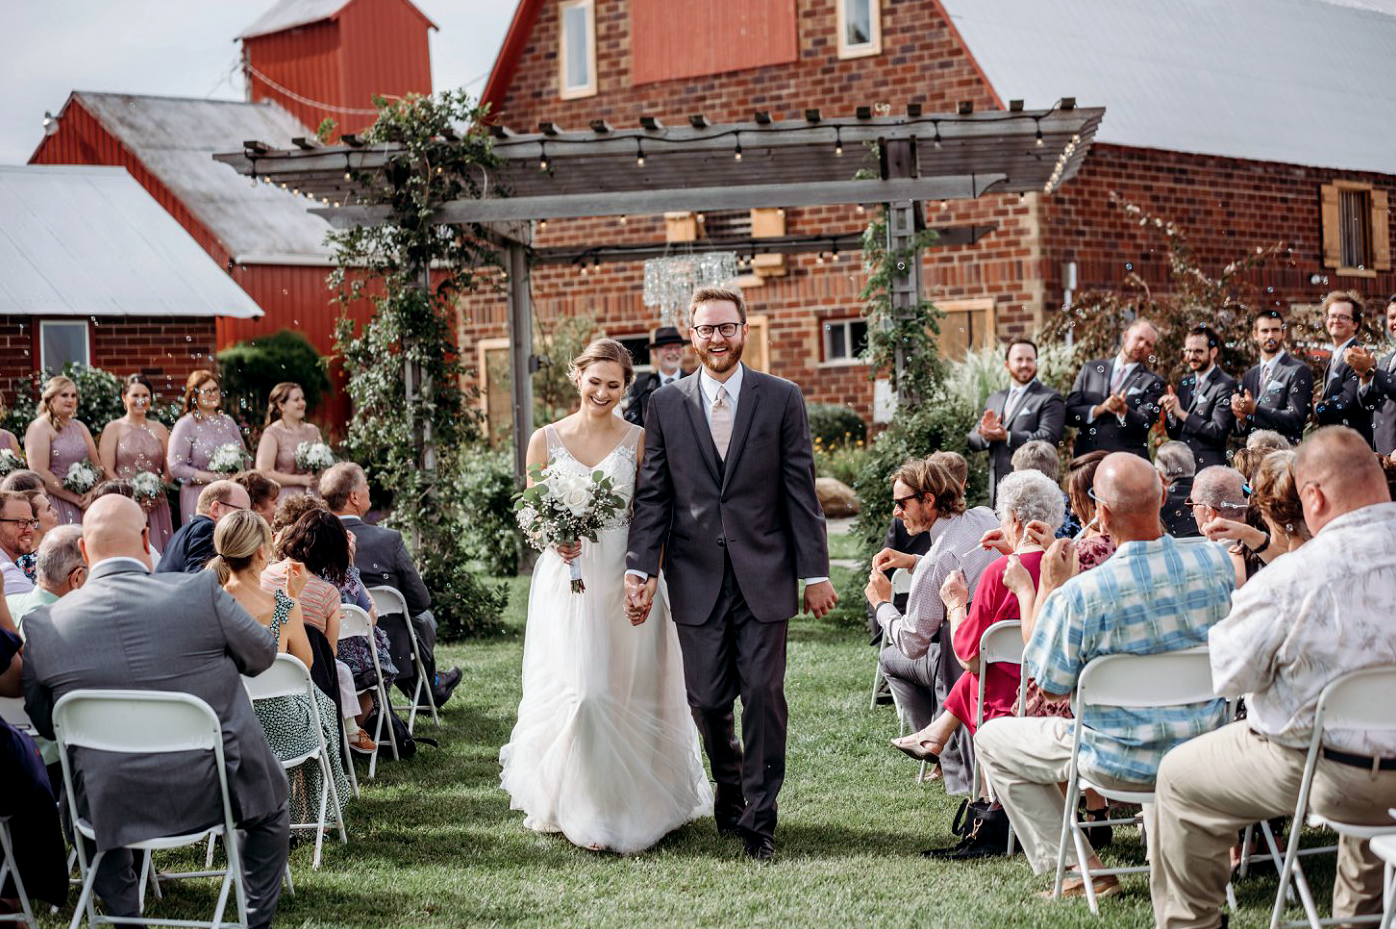 A wedding couple just got married at the Keller Brick Barn.